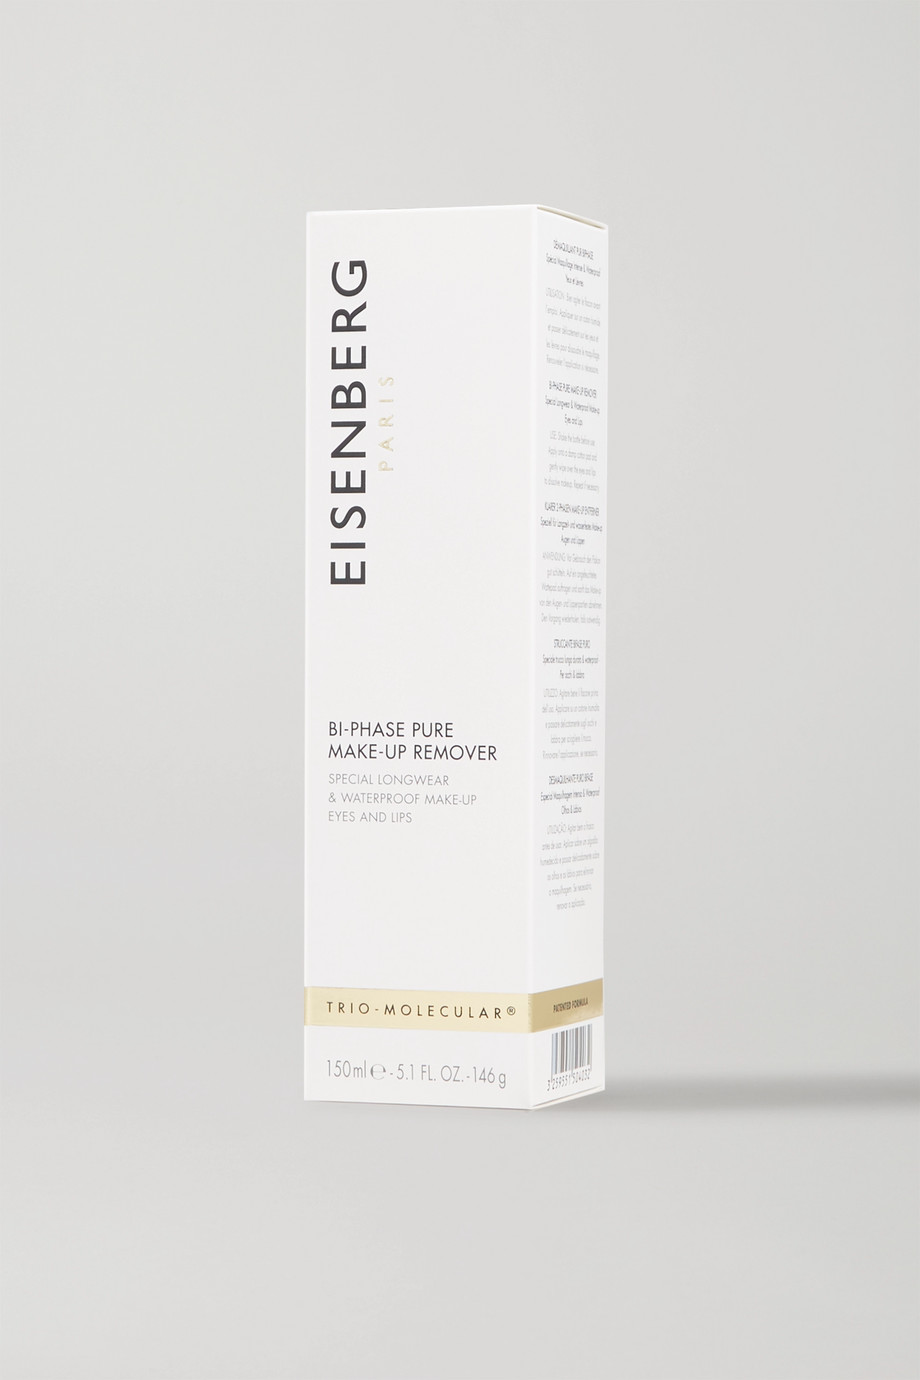 EISENBERG Paris Bi-Phase Pure Make-Up Remover, 150ml